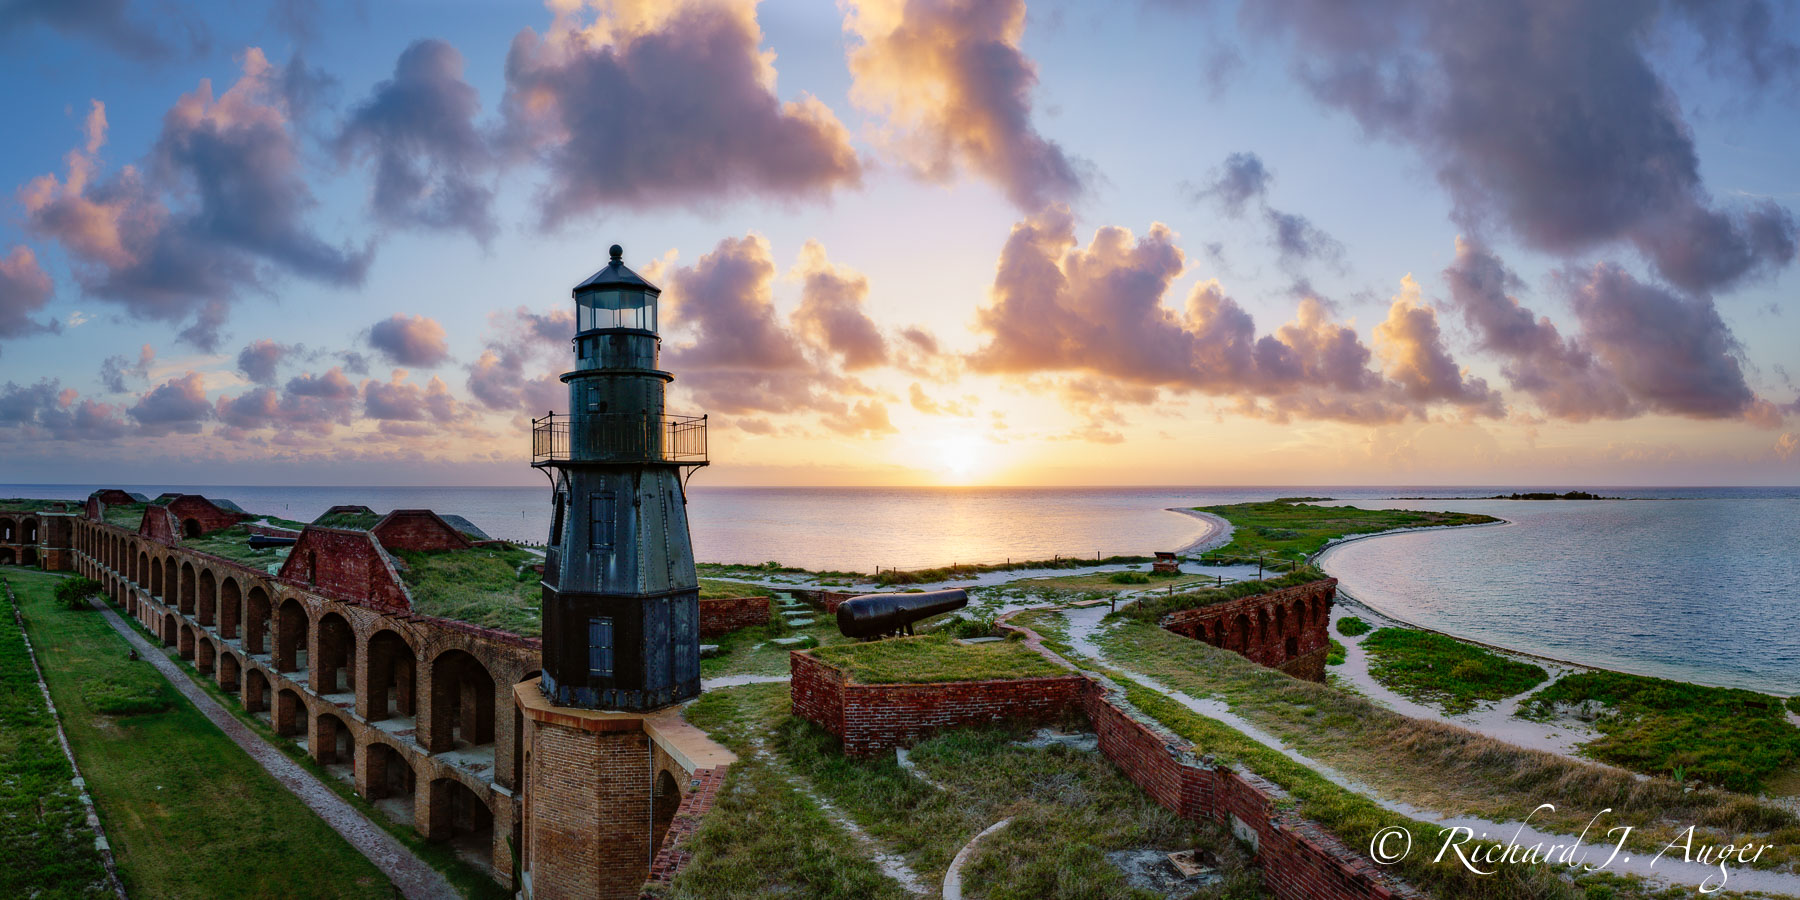 Dry Tortugas, Garden Key Lighthouse, Florida, Sunrise, Fort, Lighthouse, photograph, landcape, ocean, seascape, panorama, photographer